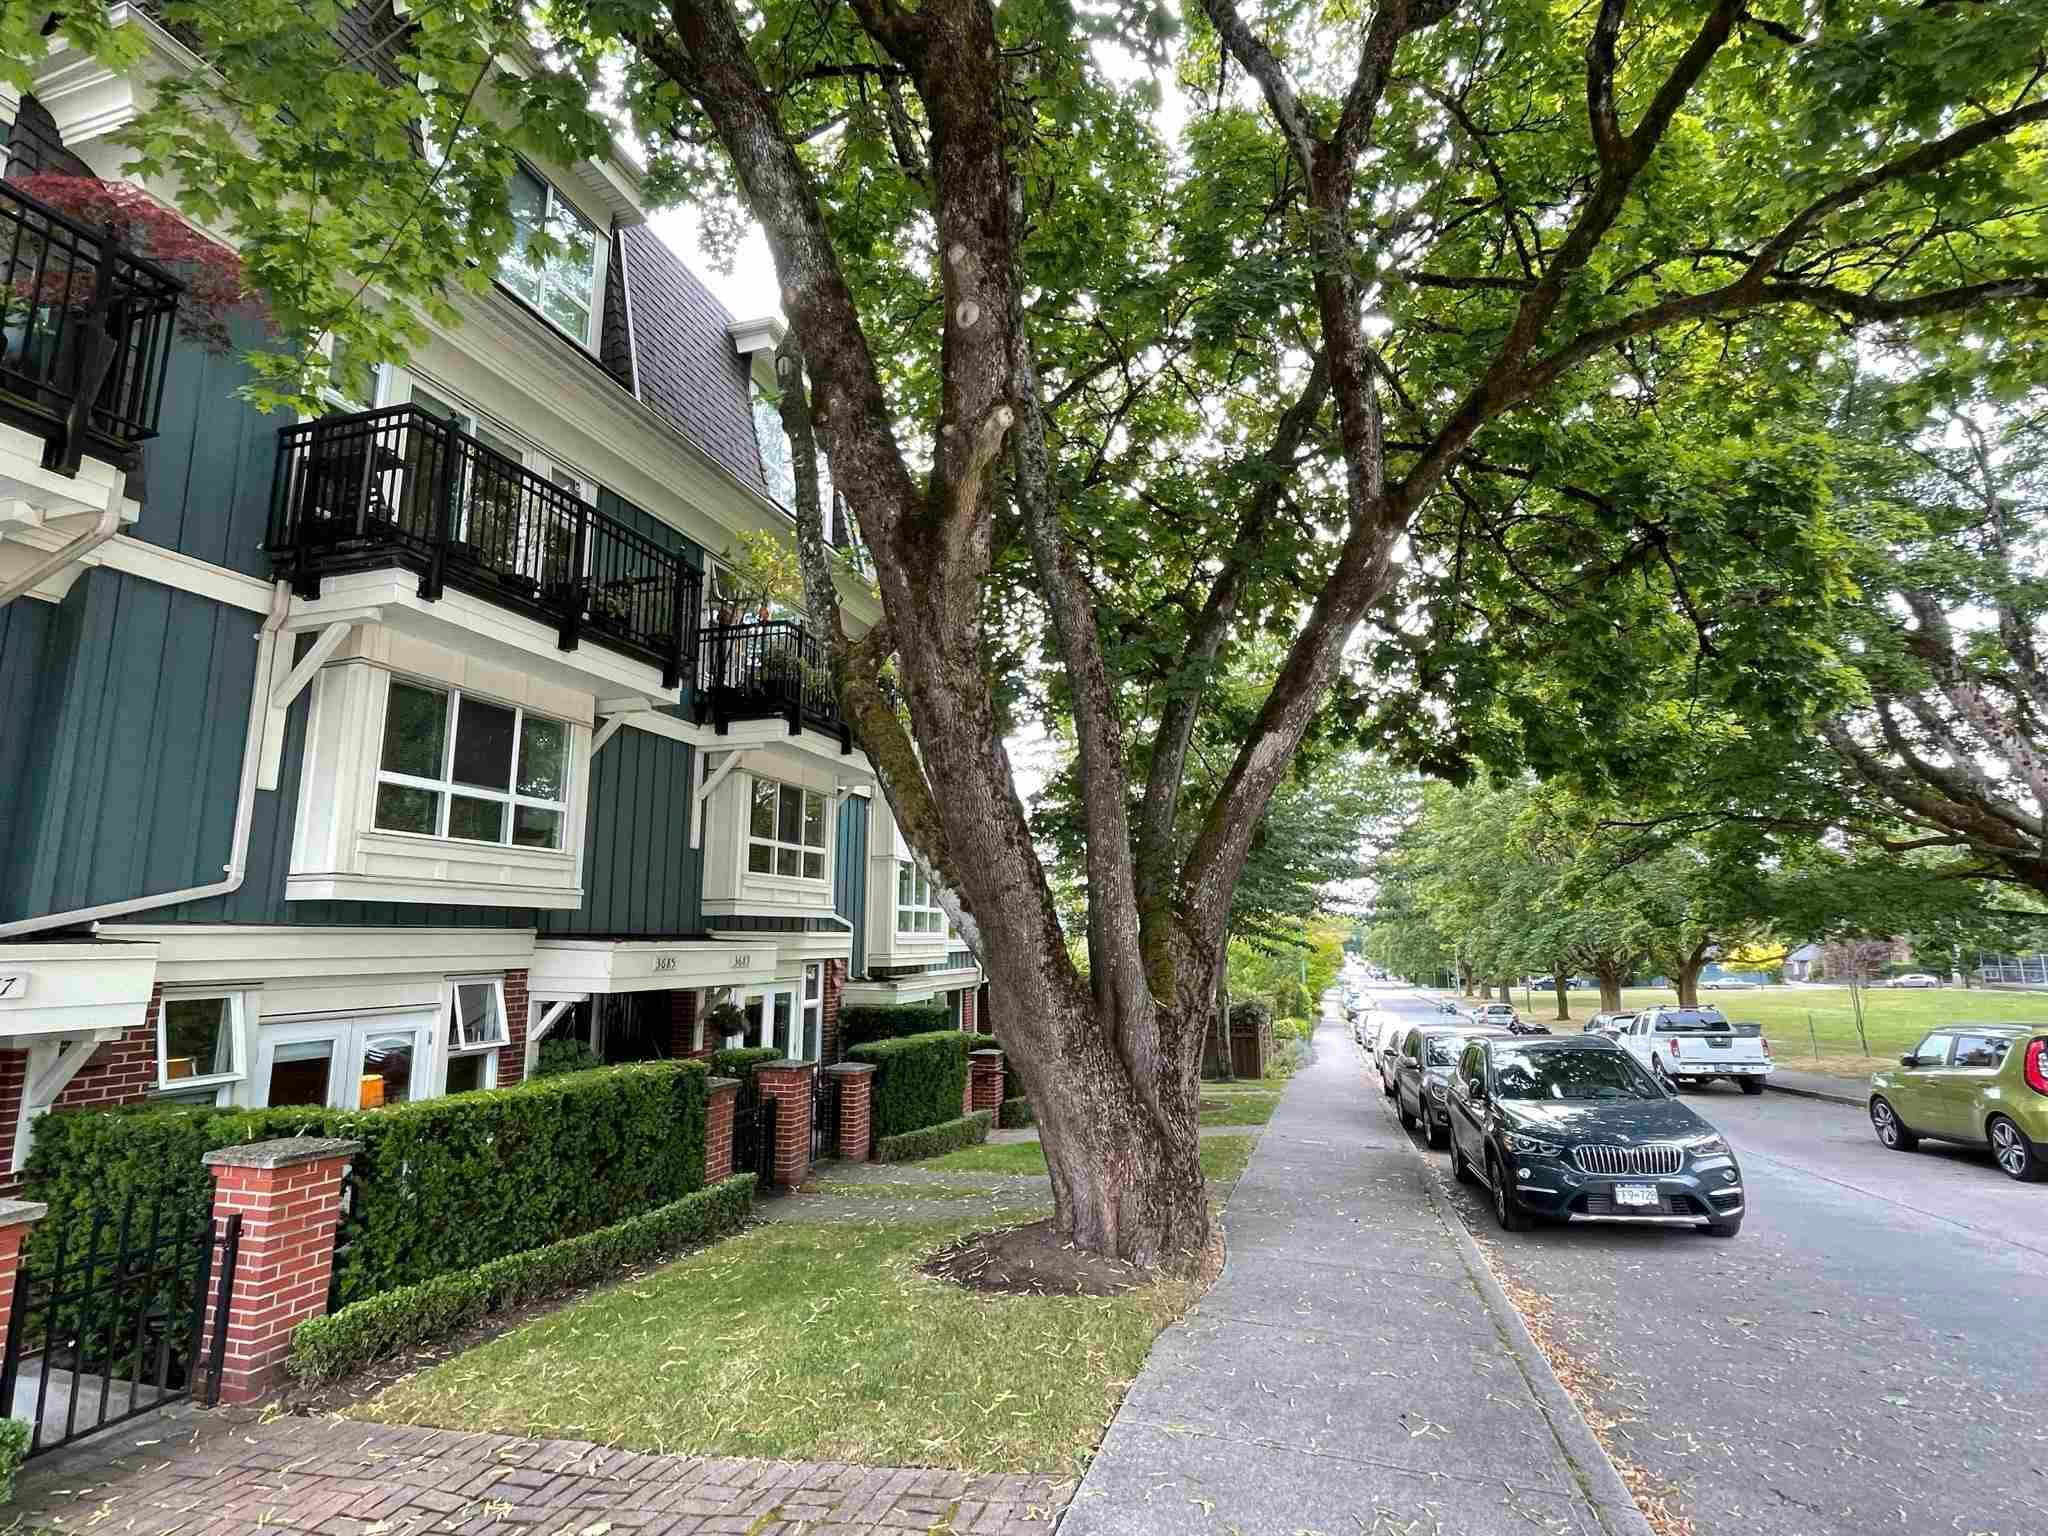 """Main Photo: 3685 W 12TH Avenue in Vancouver: Kitsilano Townhouse for sale in """"TWENTY ON THE PARK"""" (Vancouver West)  : MLS®# R2600219"""